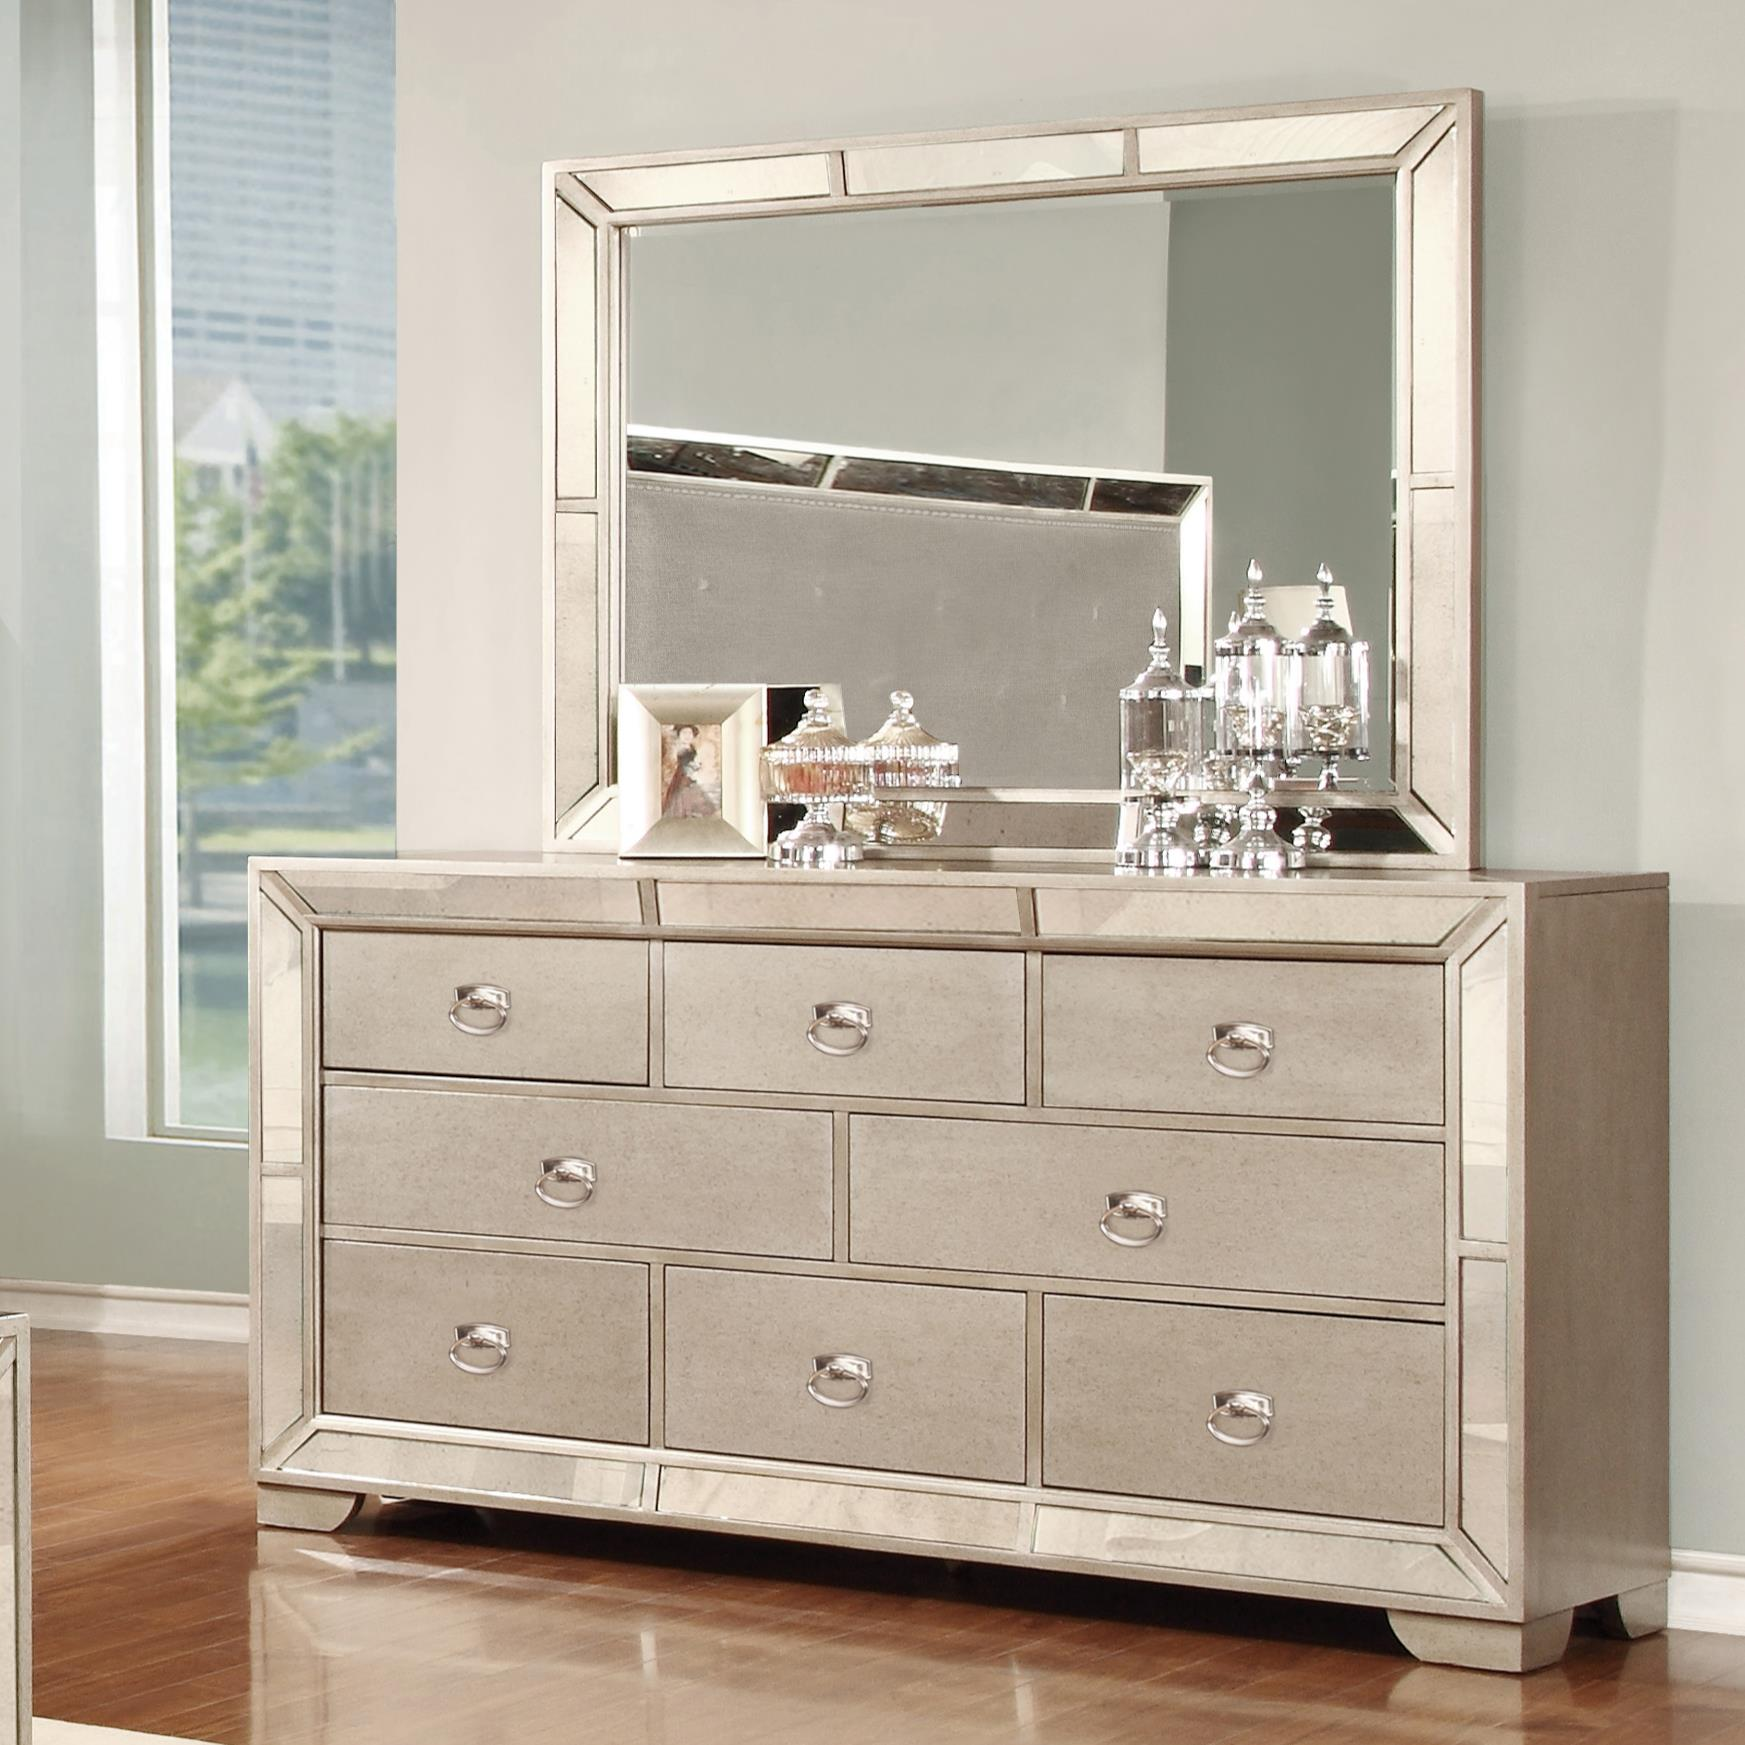 Lifestyle Glitzy 7 Drawer Dresser and Mirror - Item Number: C5219A-045+050-7DXX